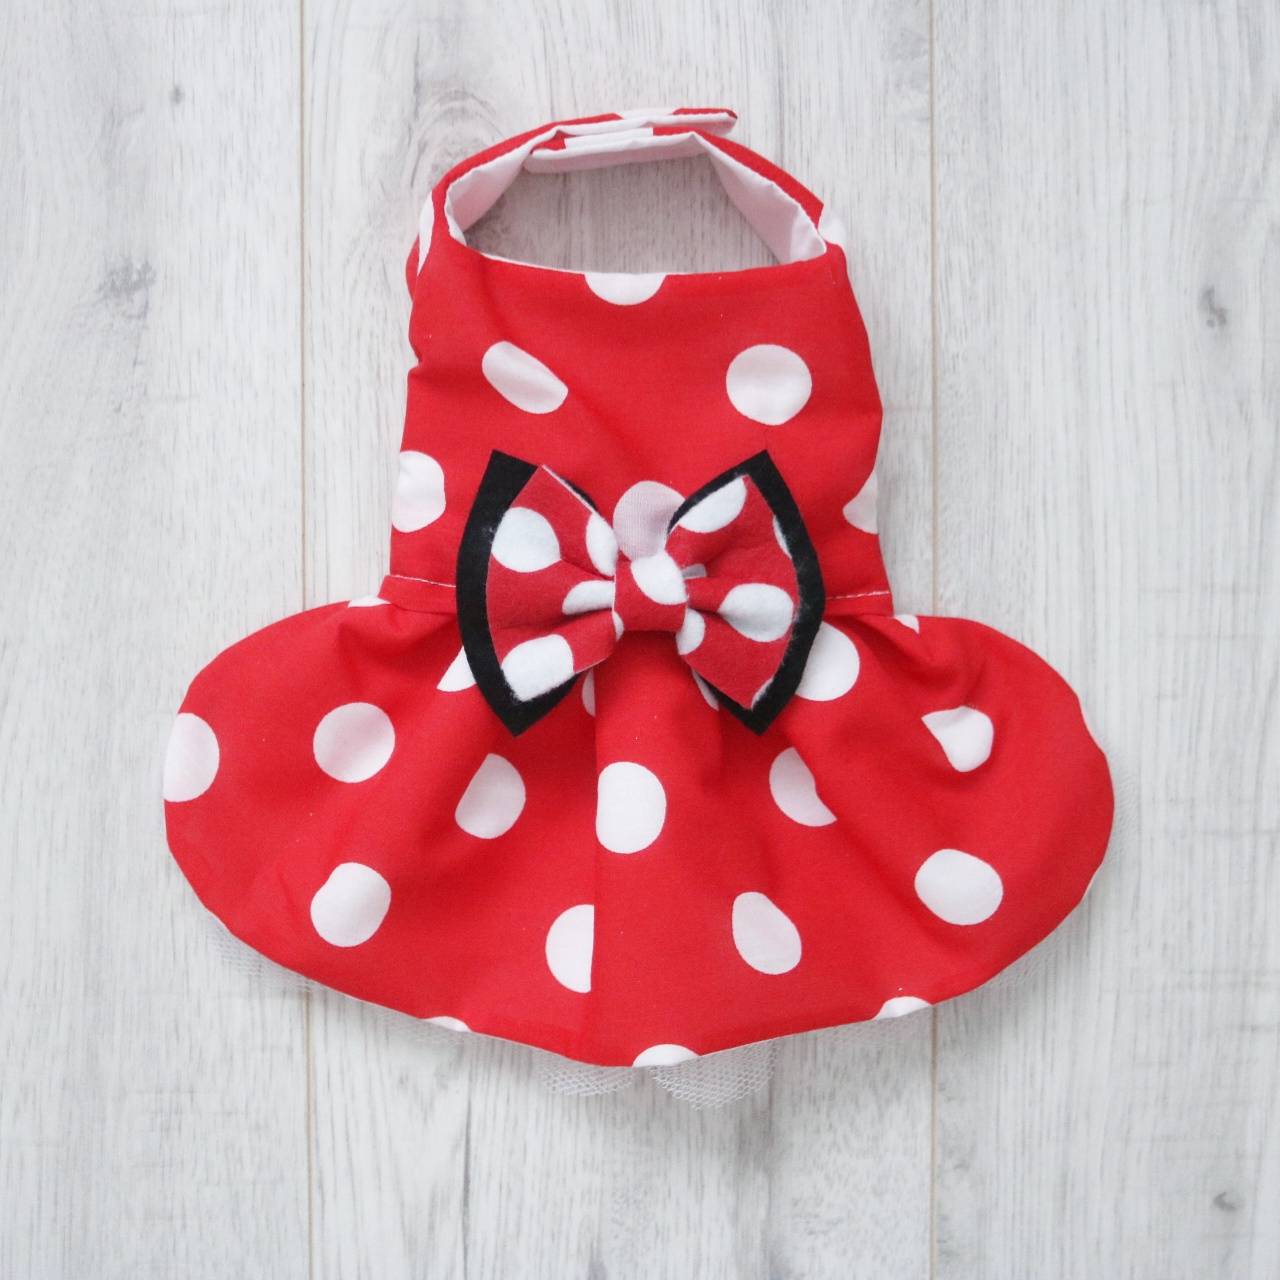 907d4037bcf Minnie Mouse Inspired Red and White Polka Dot Dog Dress - Pretty ...